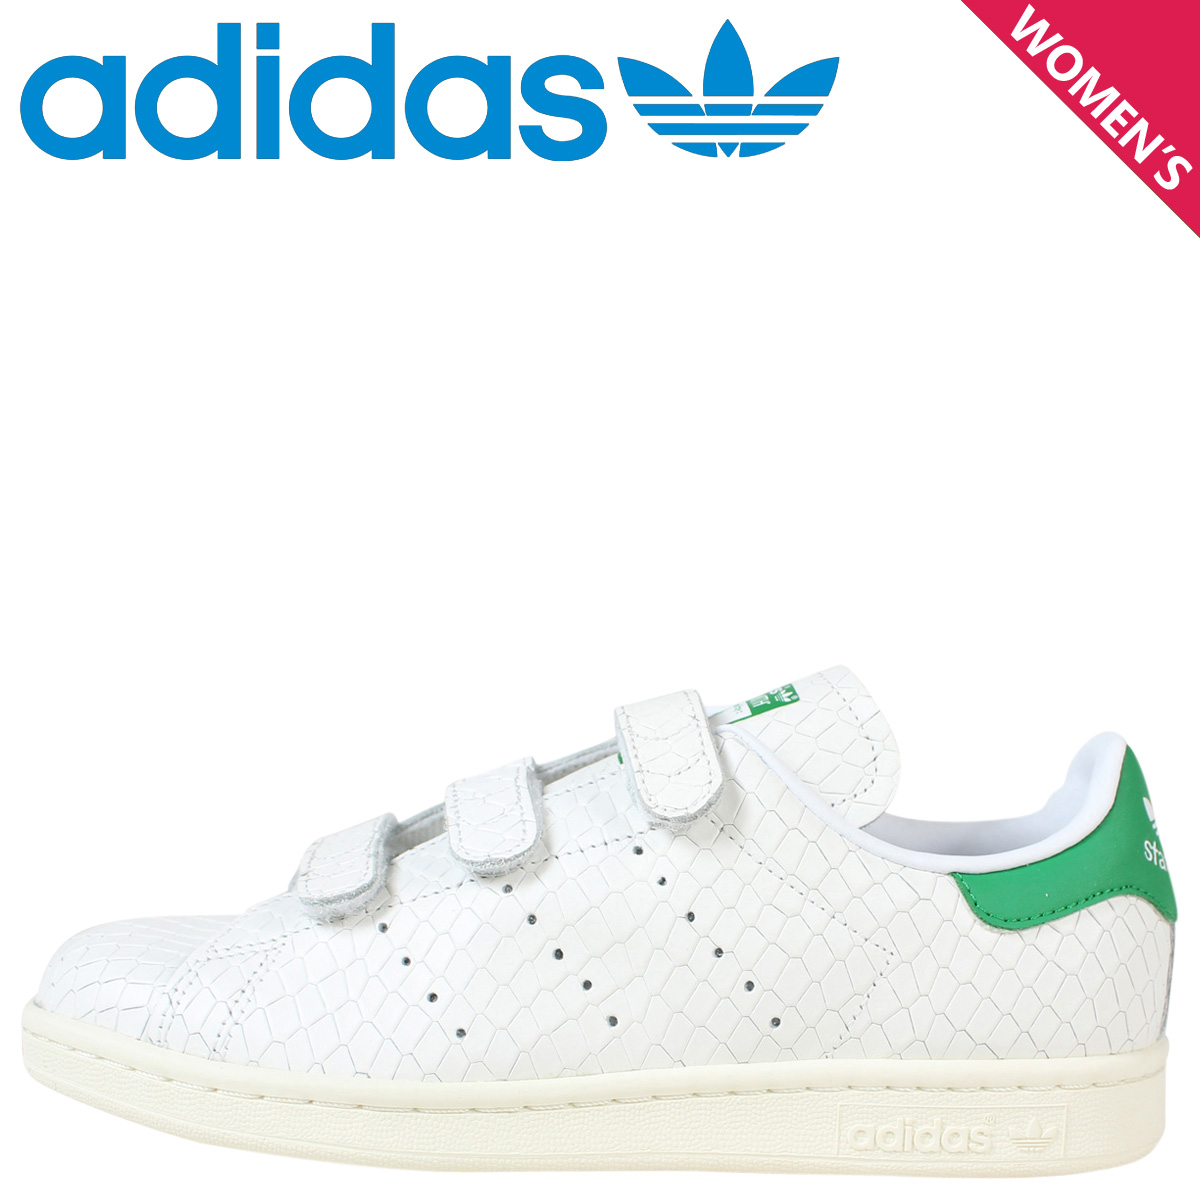 1418a5ec0d4 Classic Mark symbolizes the adidas three lines are simple yet also said the  face of the brand impact and the classic